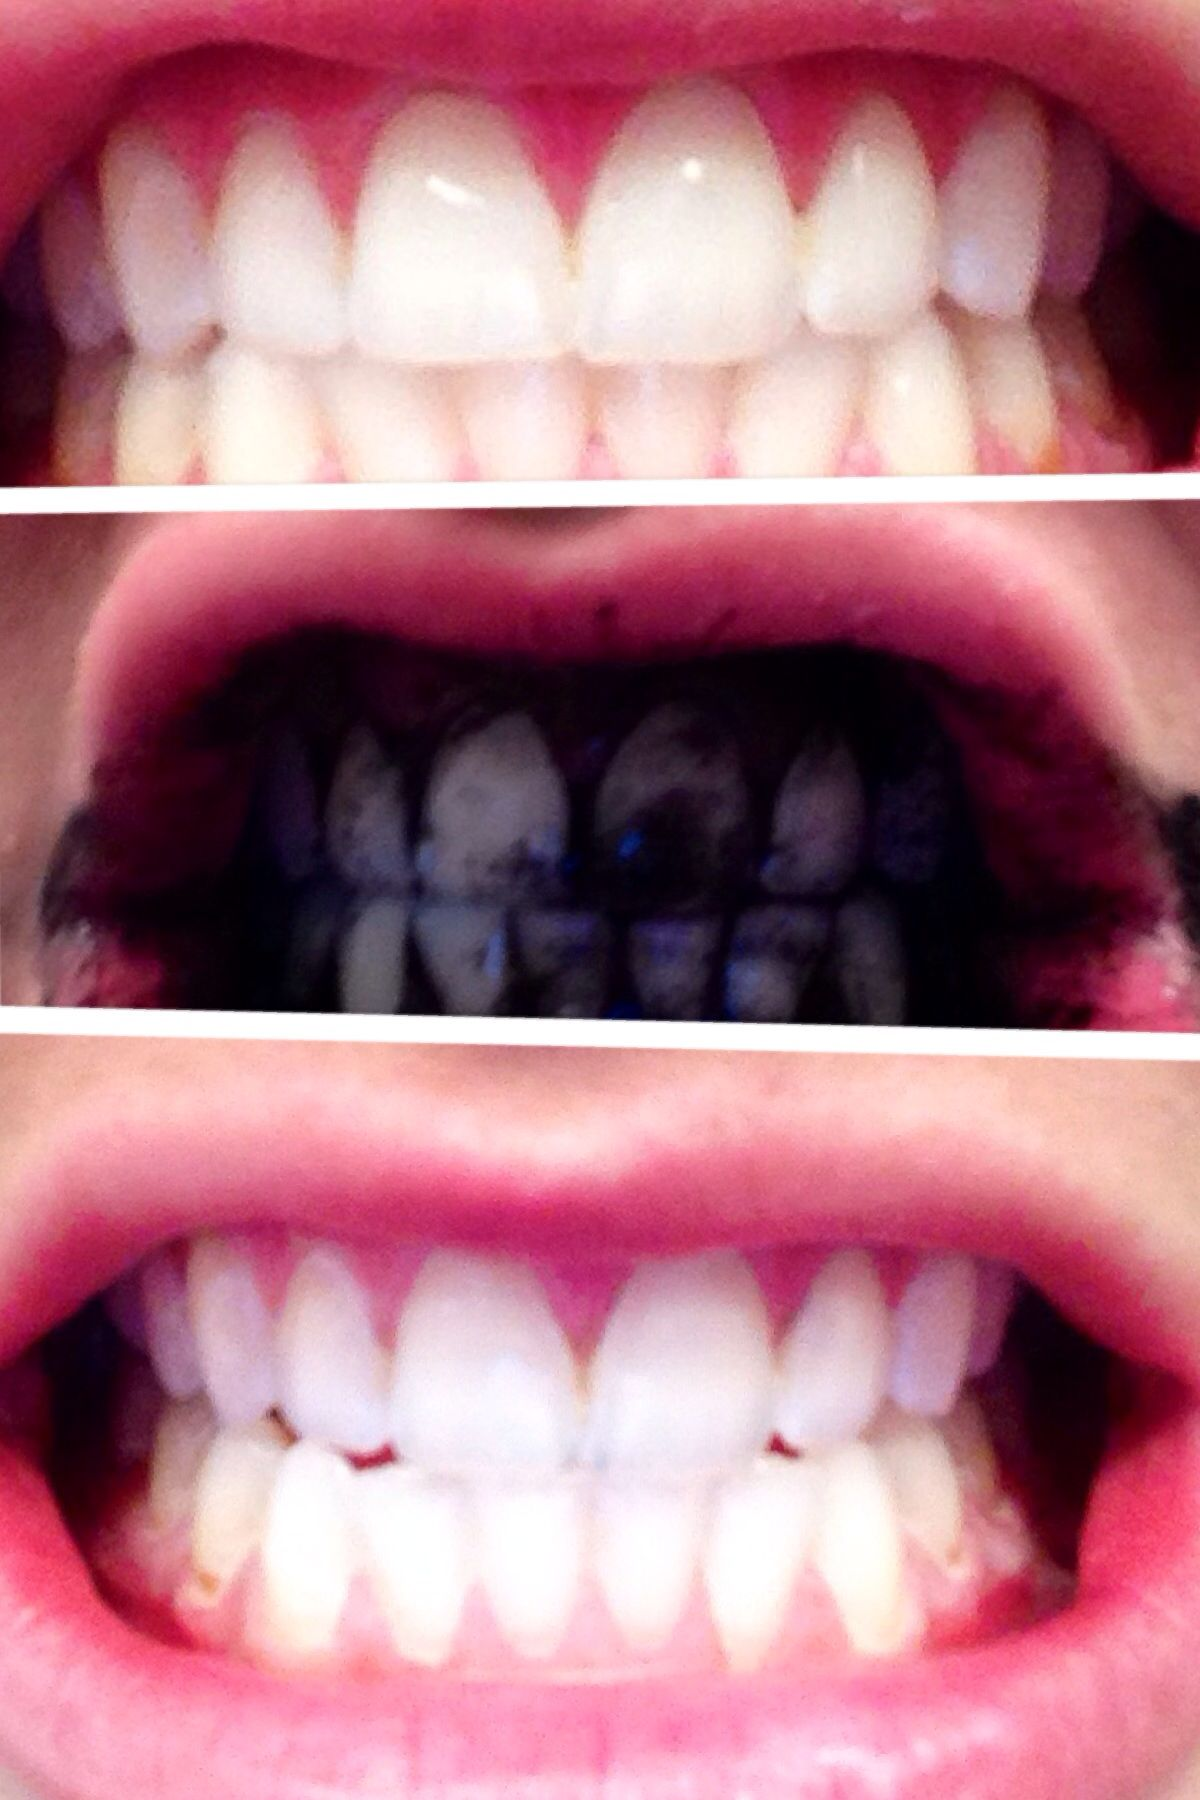 Activated Charcoal Whitens Teeth Open The Capsules And Empty A Few